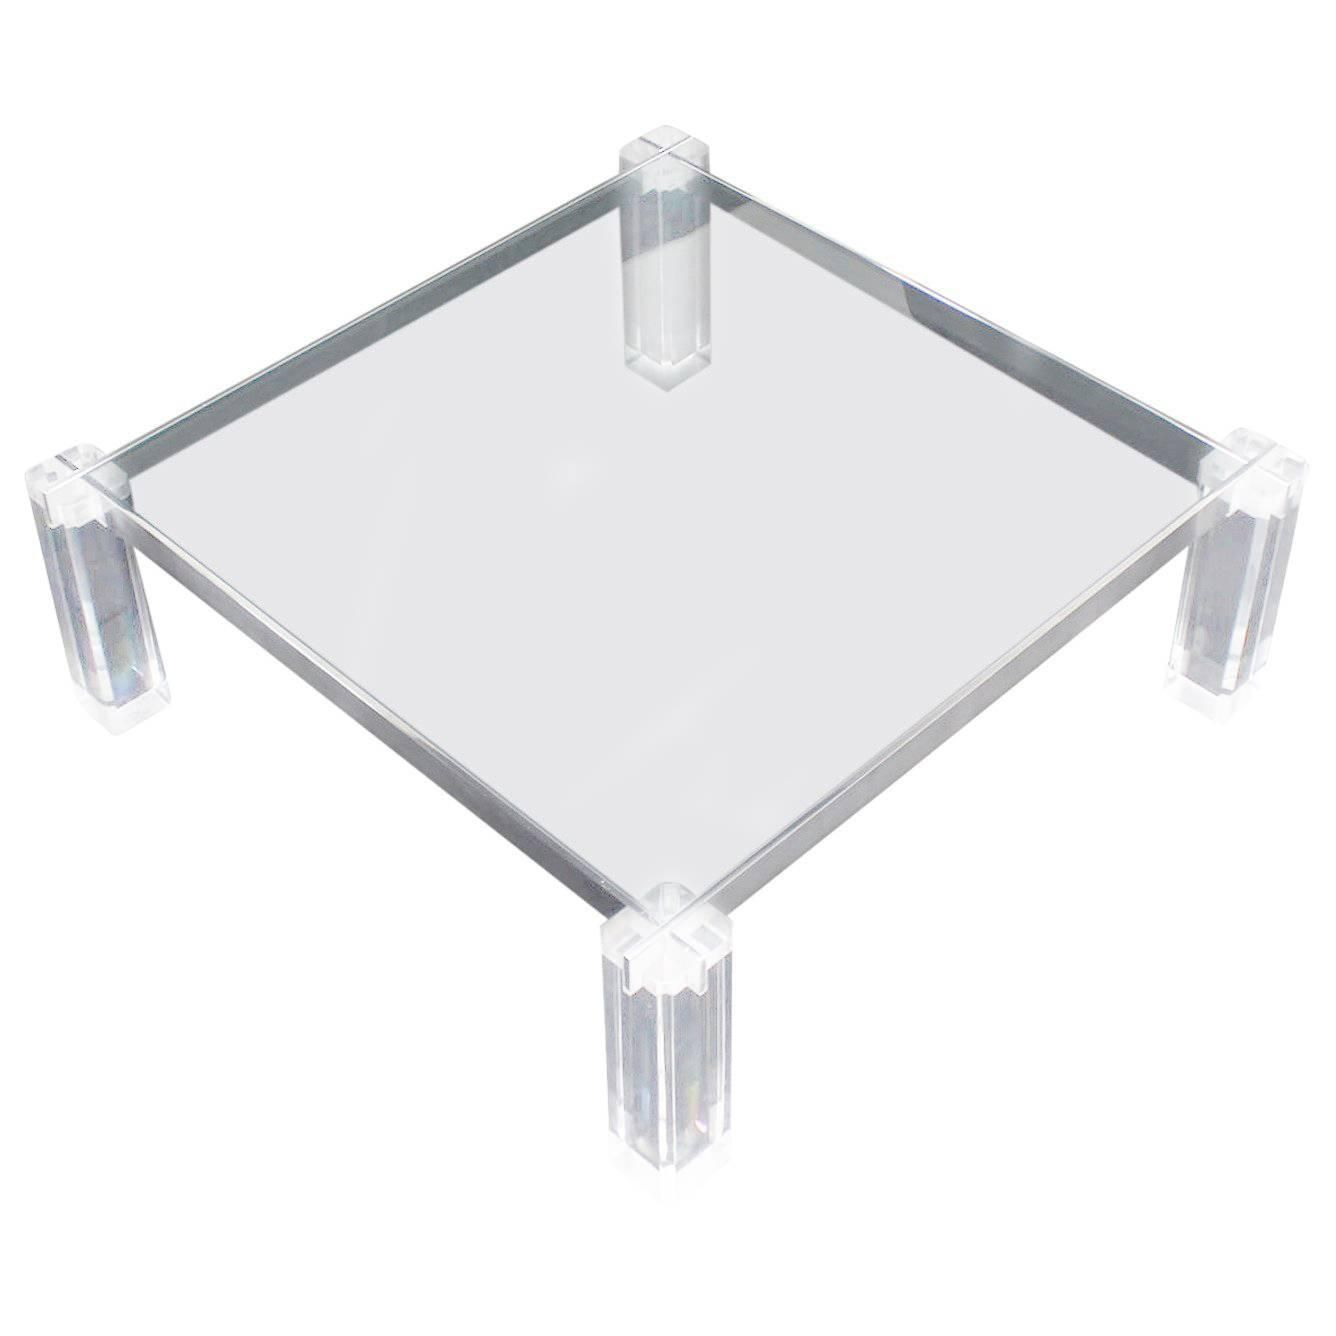 Lucite base large square coffee table with images